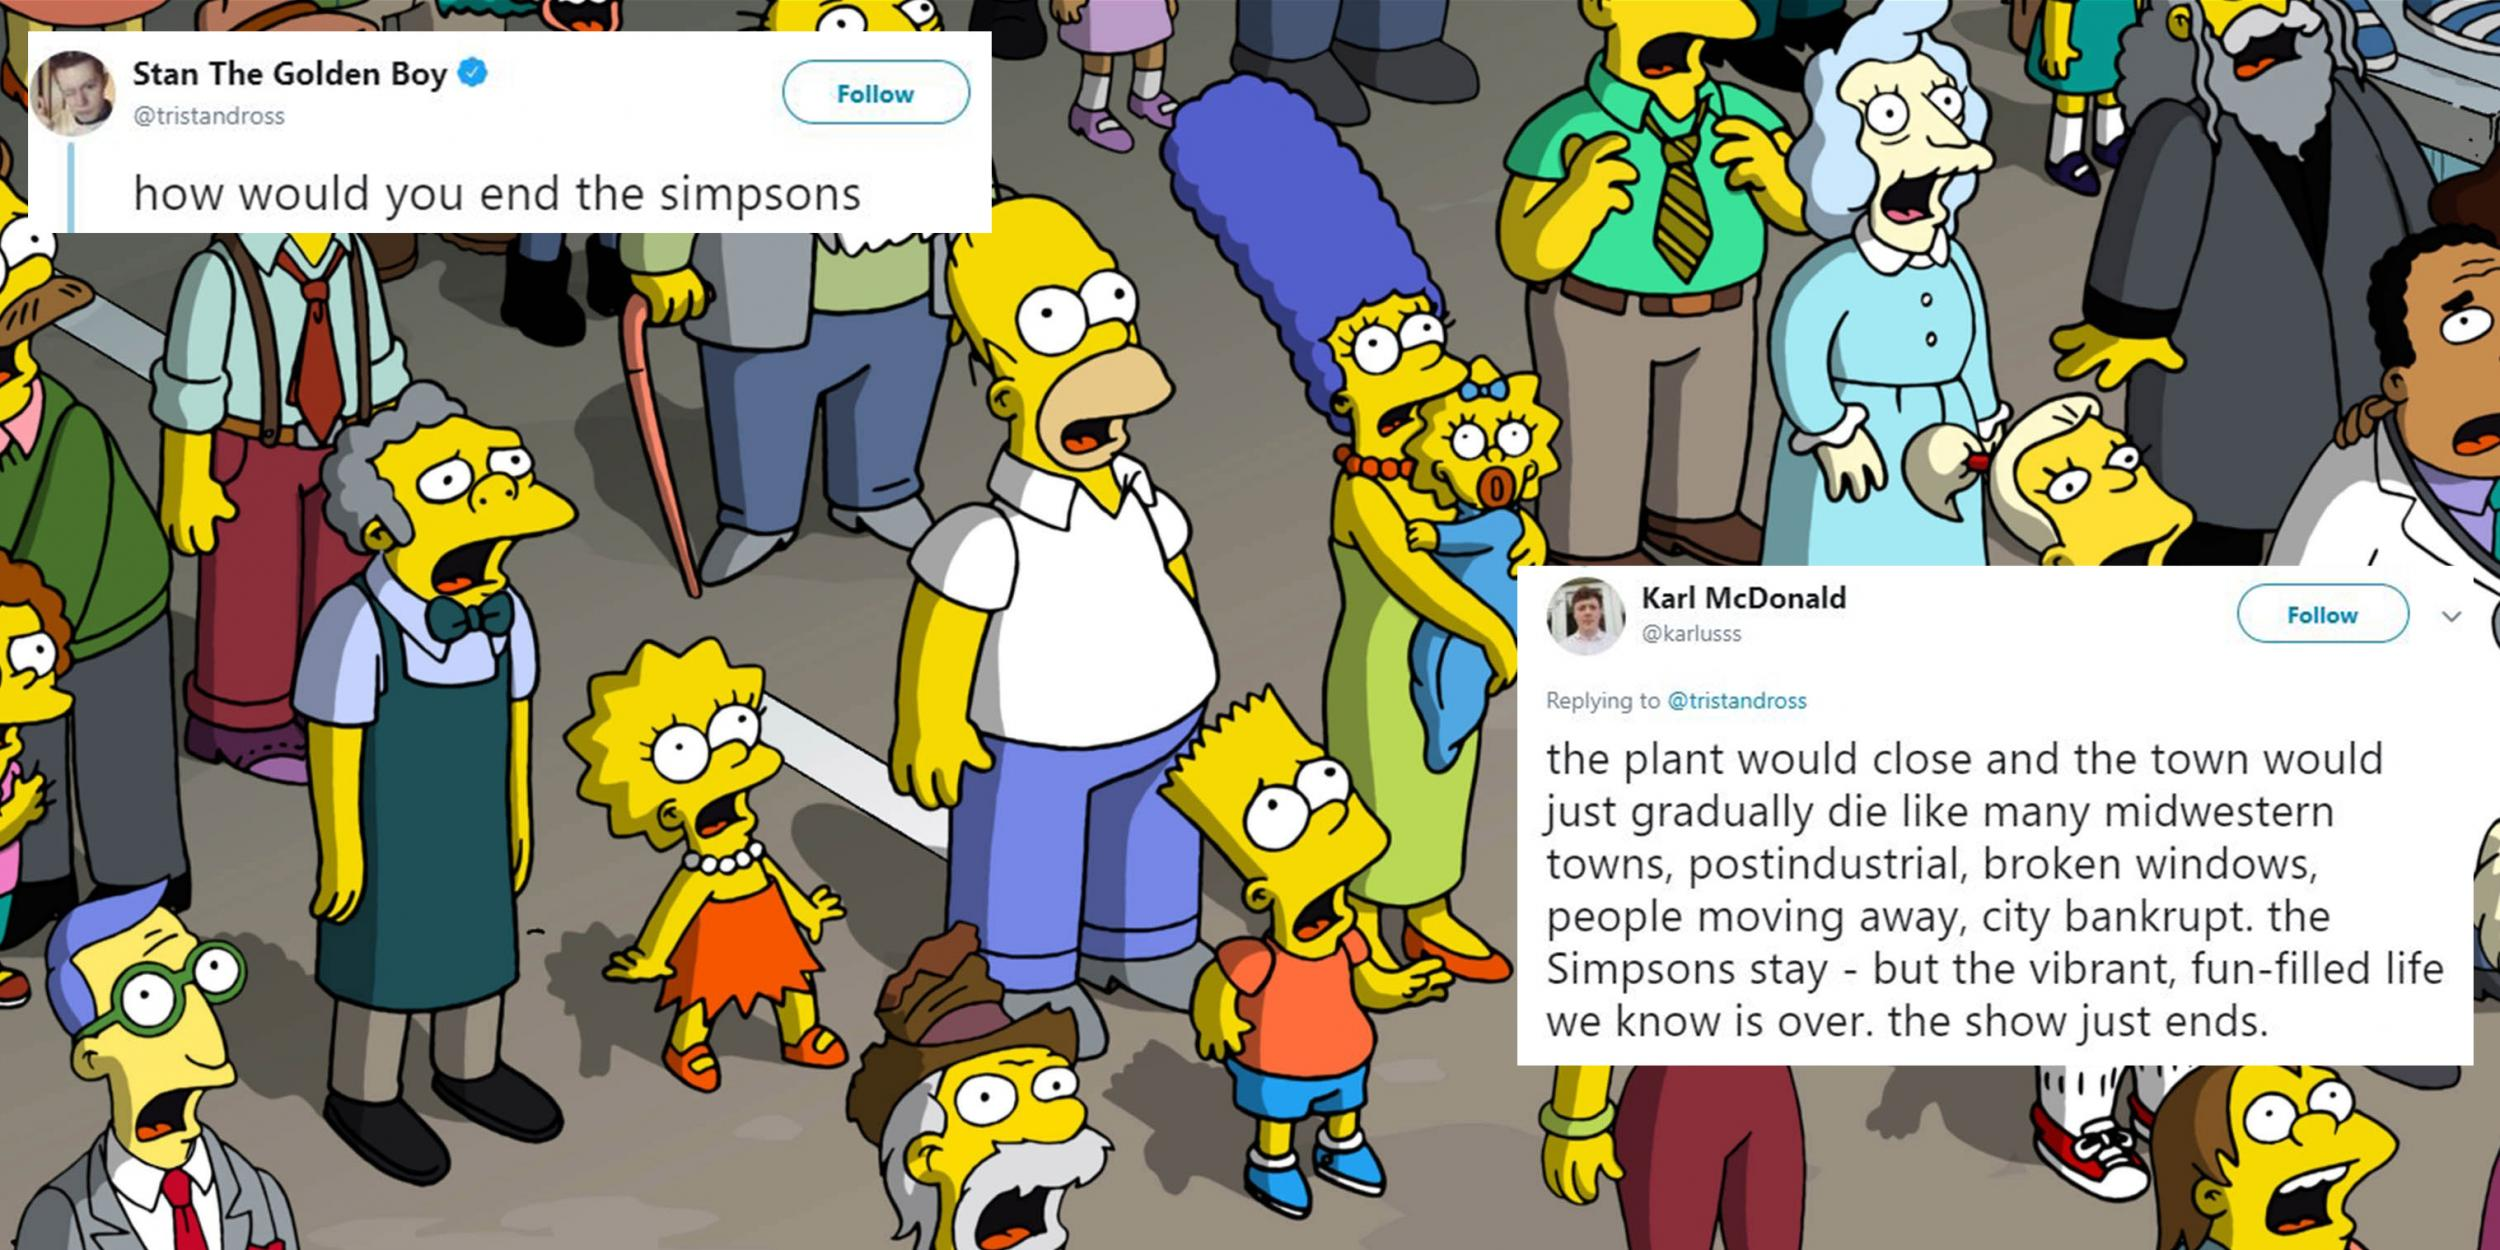 This Twitter thread on how The Simpsons should end has provided some creative suggestions